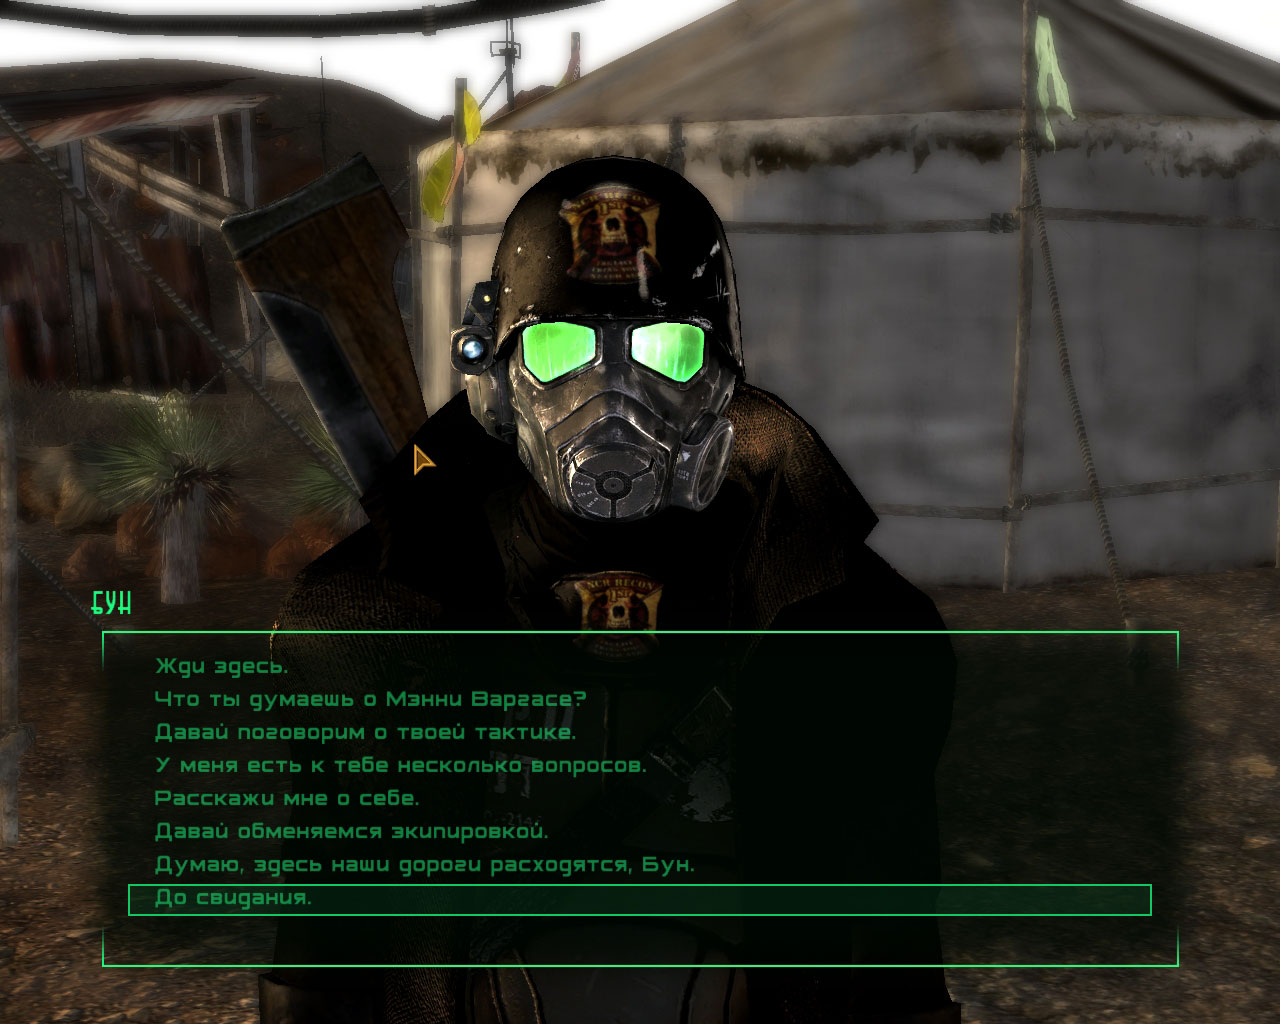 Fallout 3 nmc texture pack not working